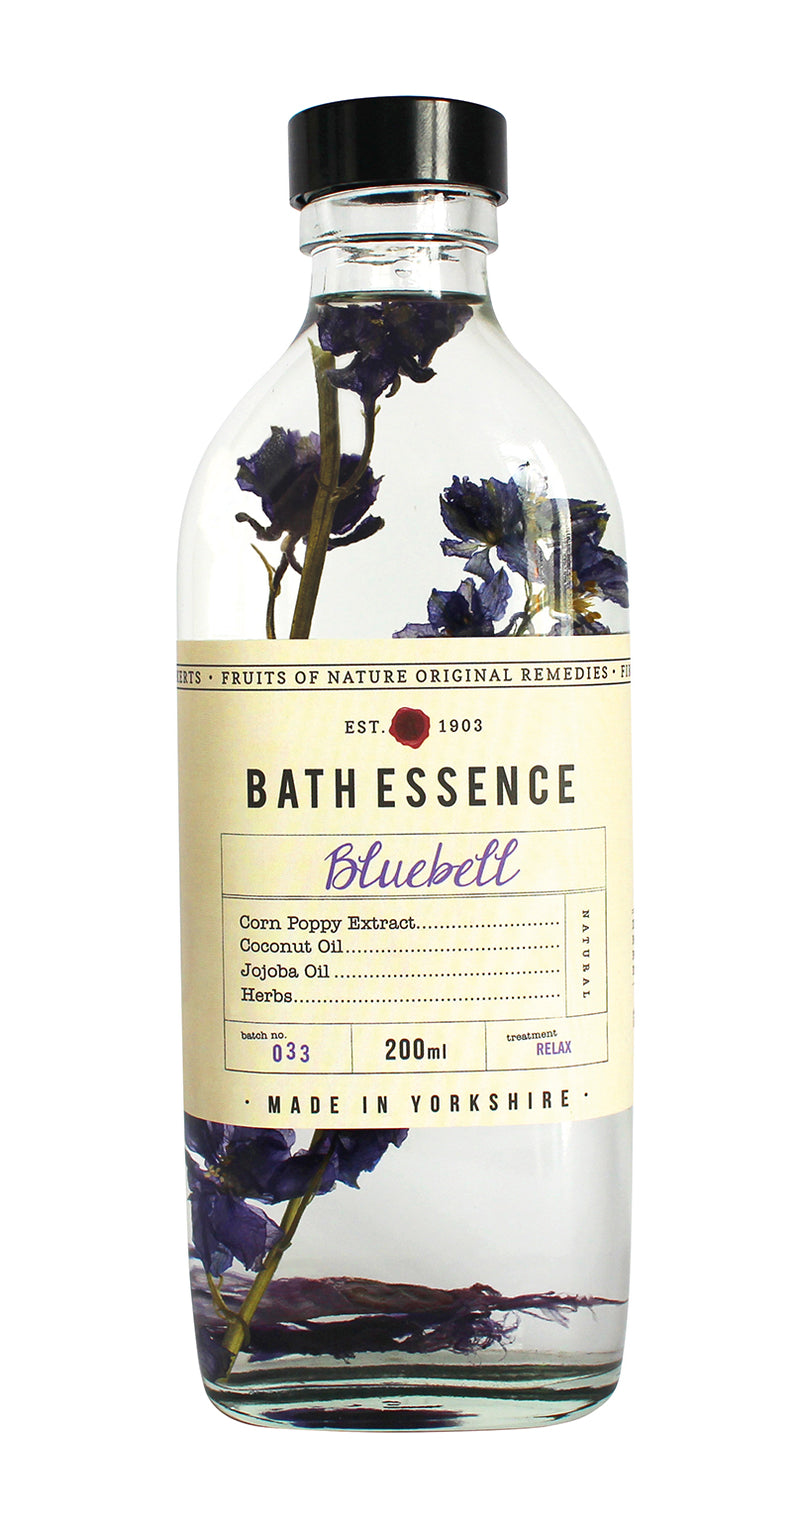 Bluebell bath essence